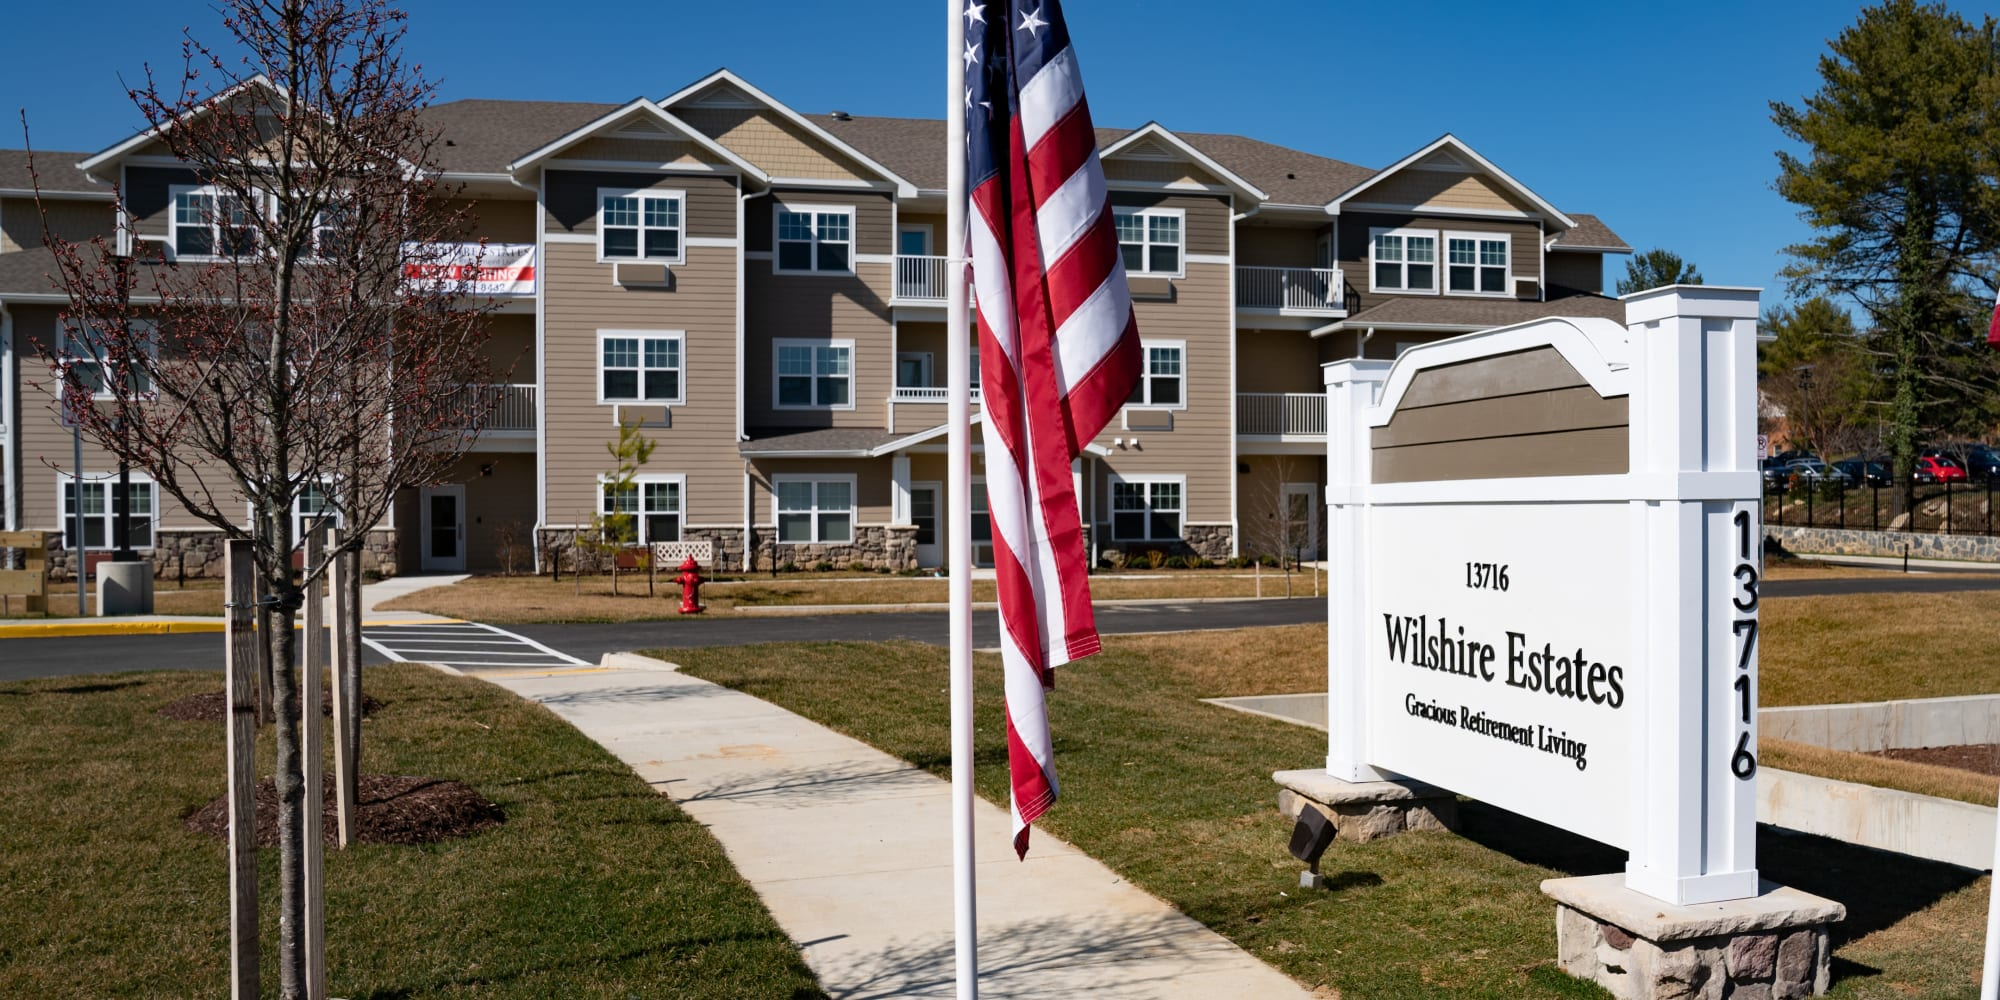 Wilshire Estates Gracious Retirement Living in Silver Spring, Maryland